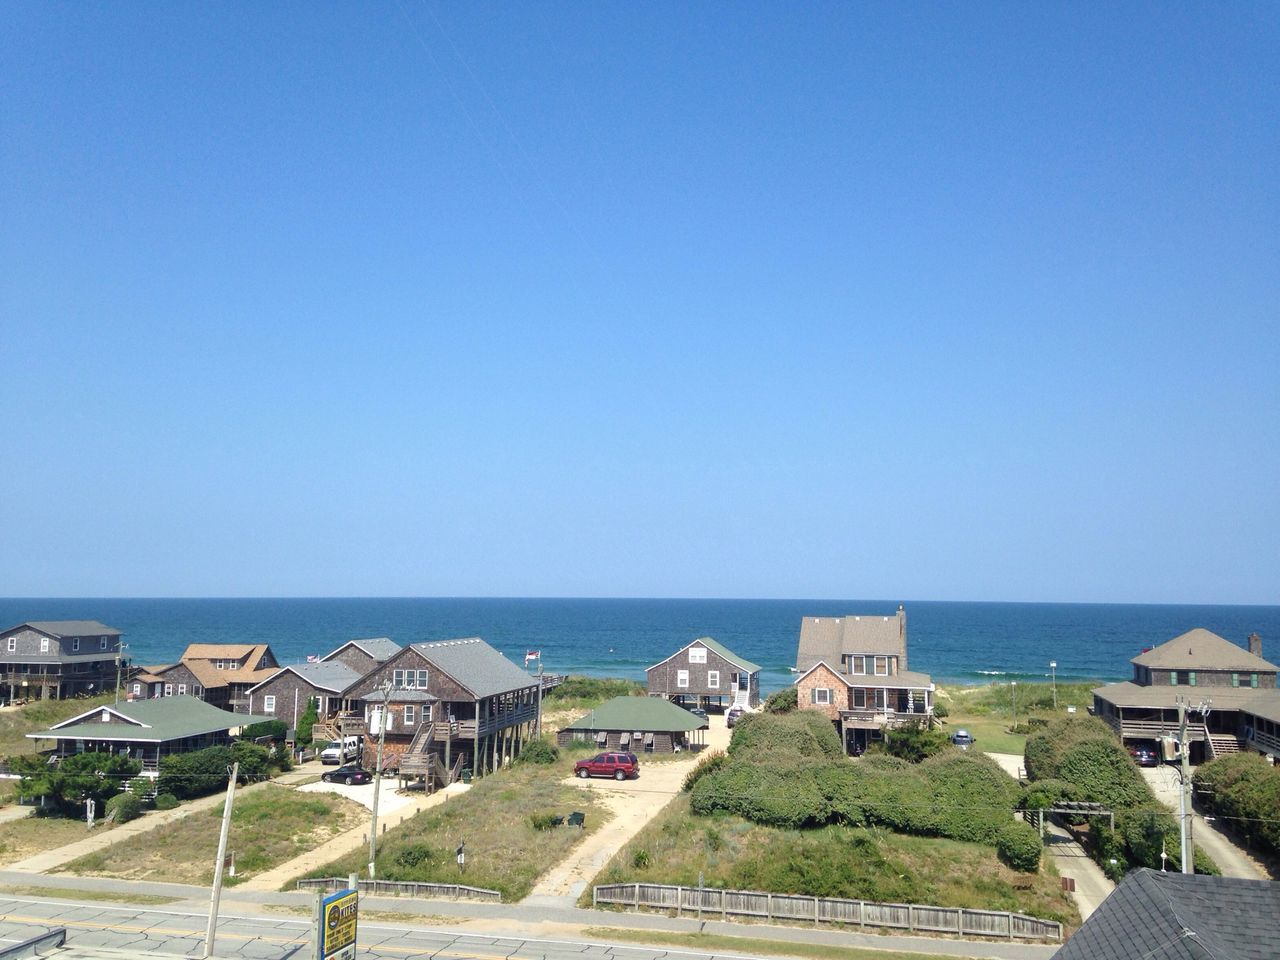 View from on top of Kitty Hawk Kites building. OBX14 Enjoying The View